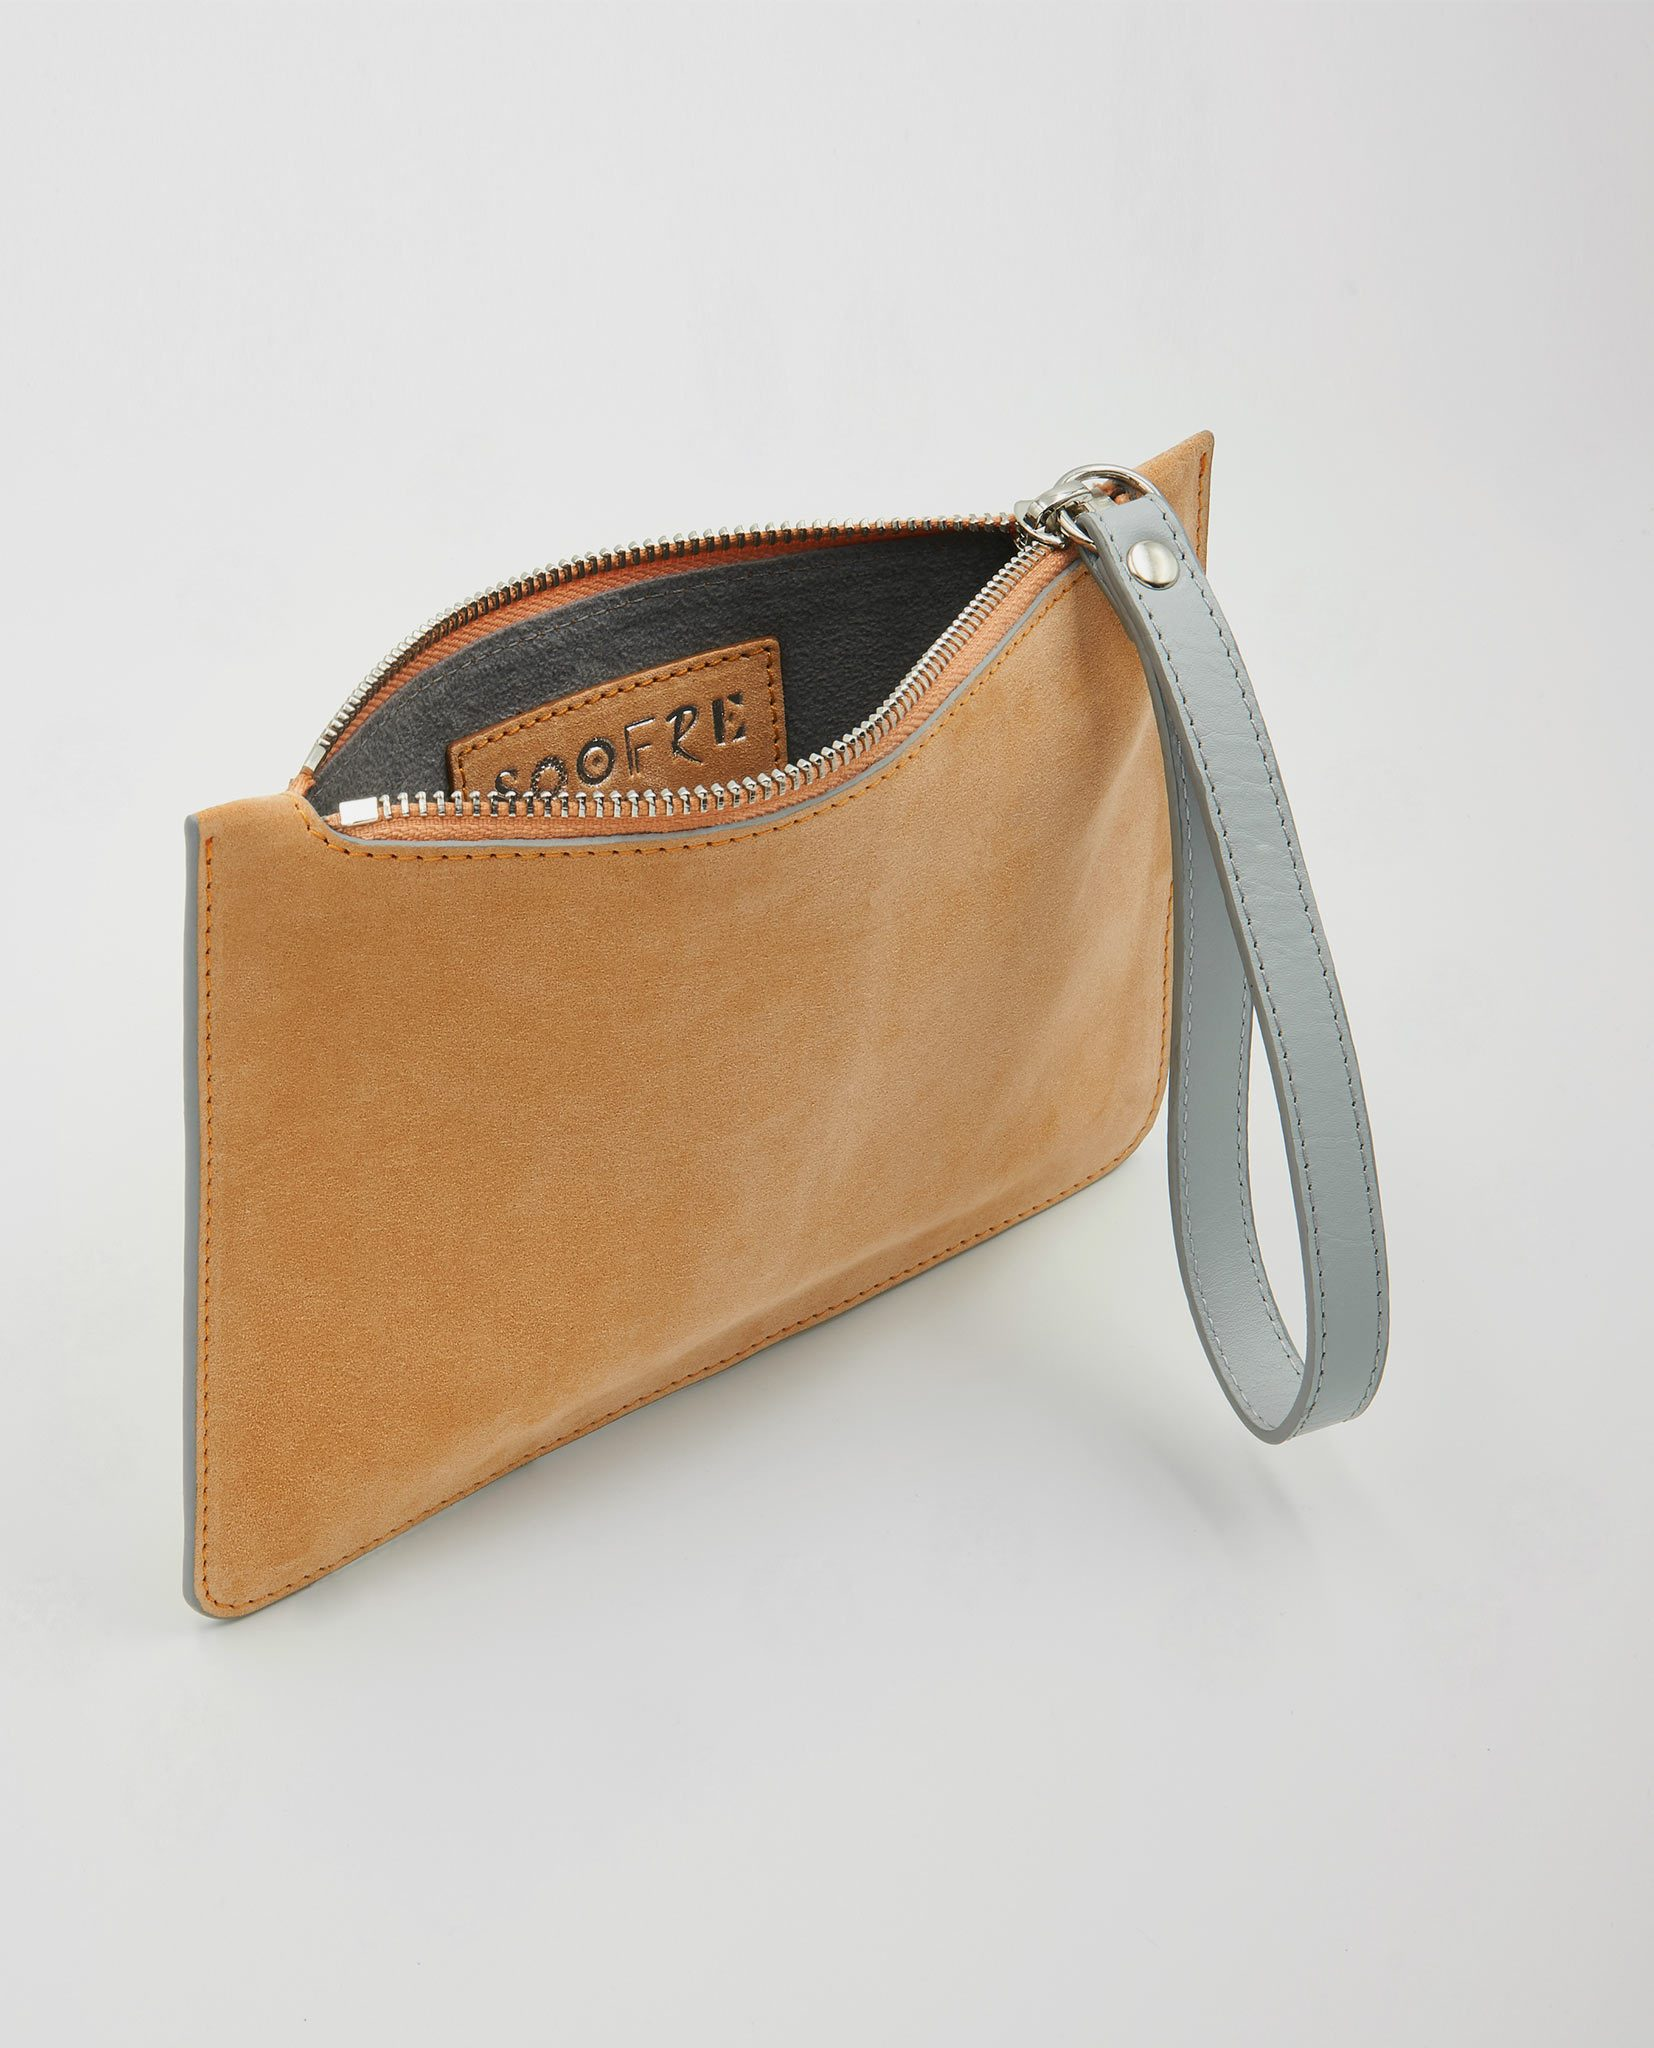 Soofre_Small-Pouch_Apricot-Dove-Grey_2